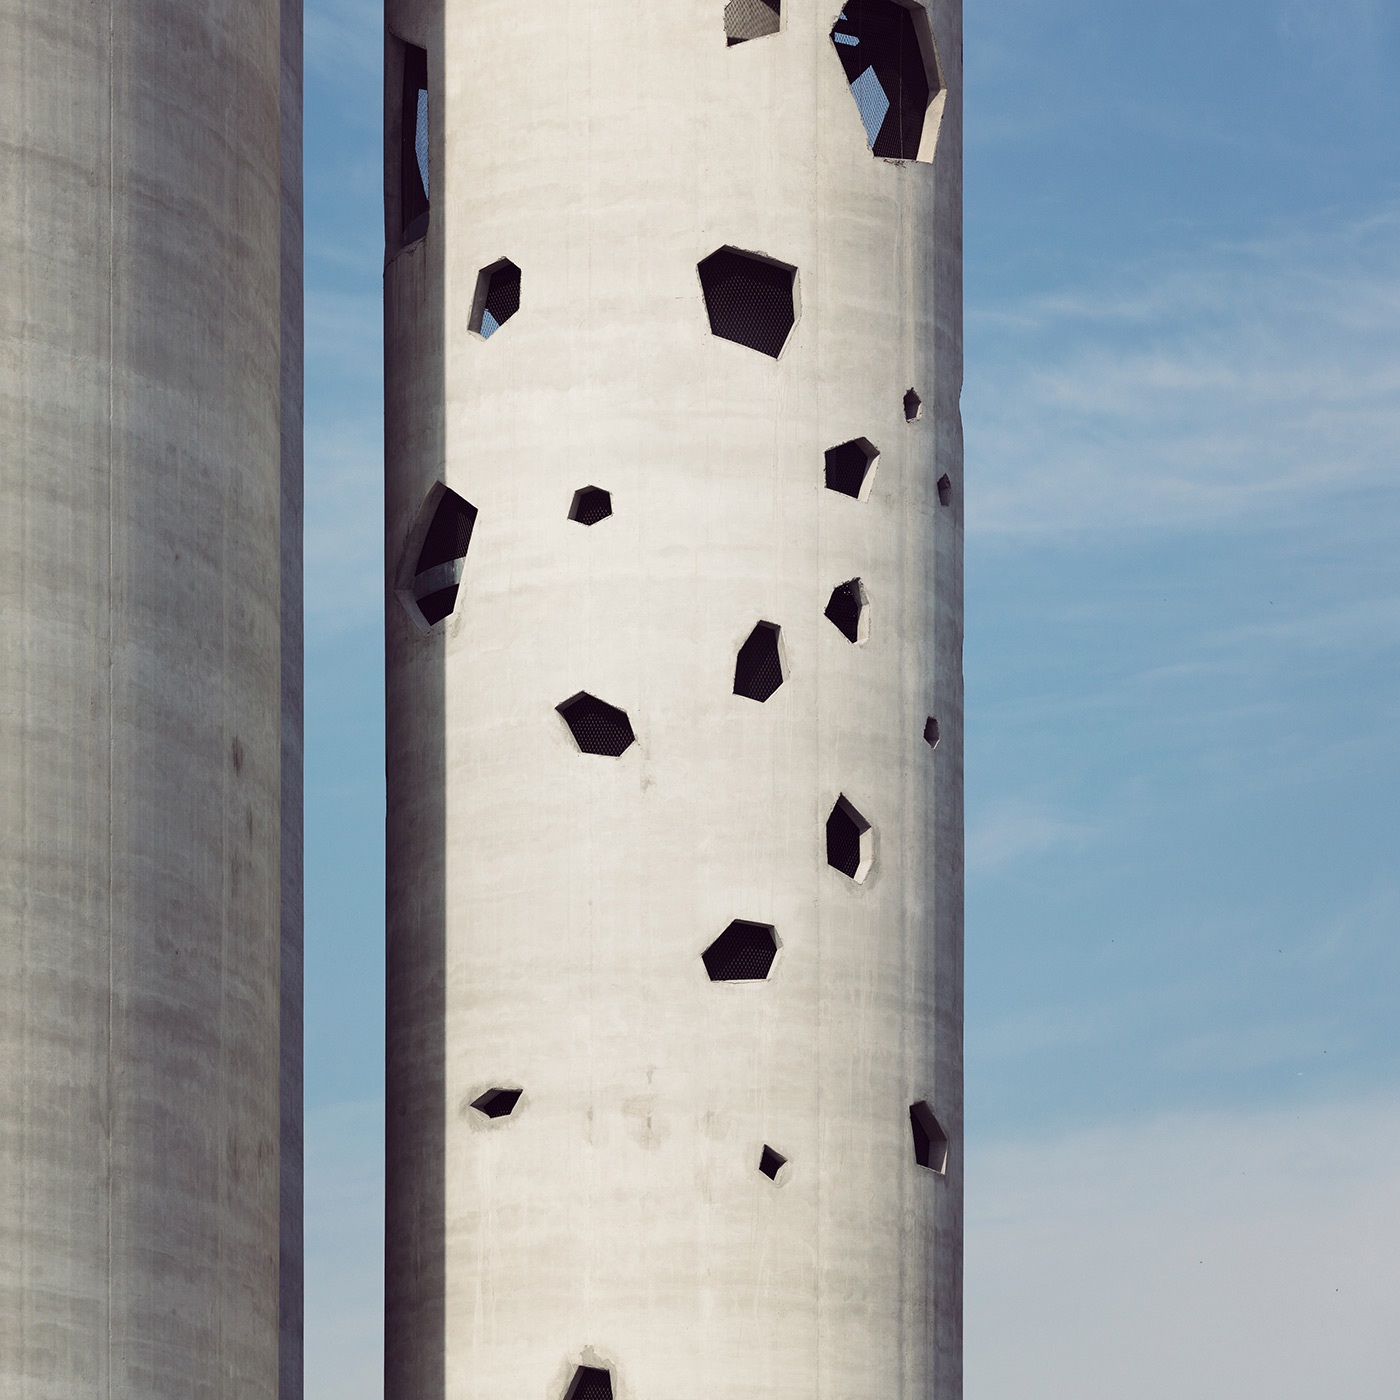 SILOS 13 Location: Paris, France Architect: VIB Architecture